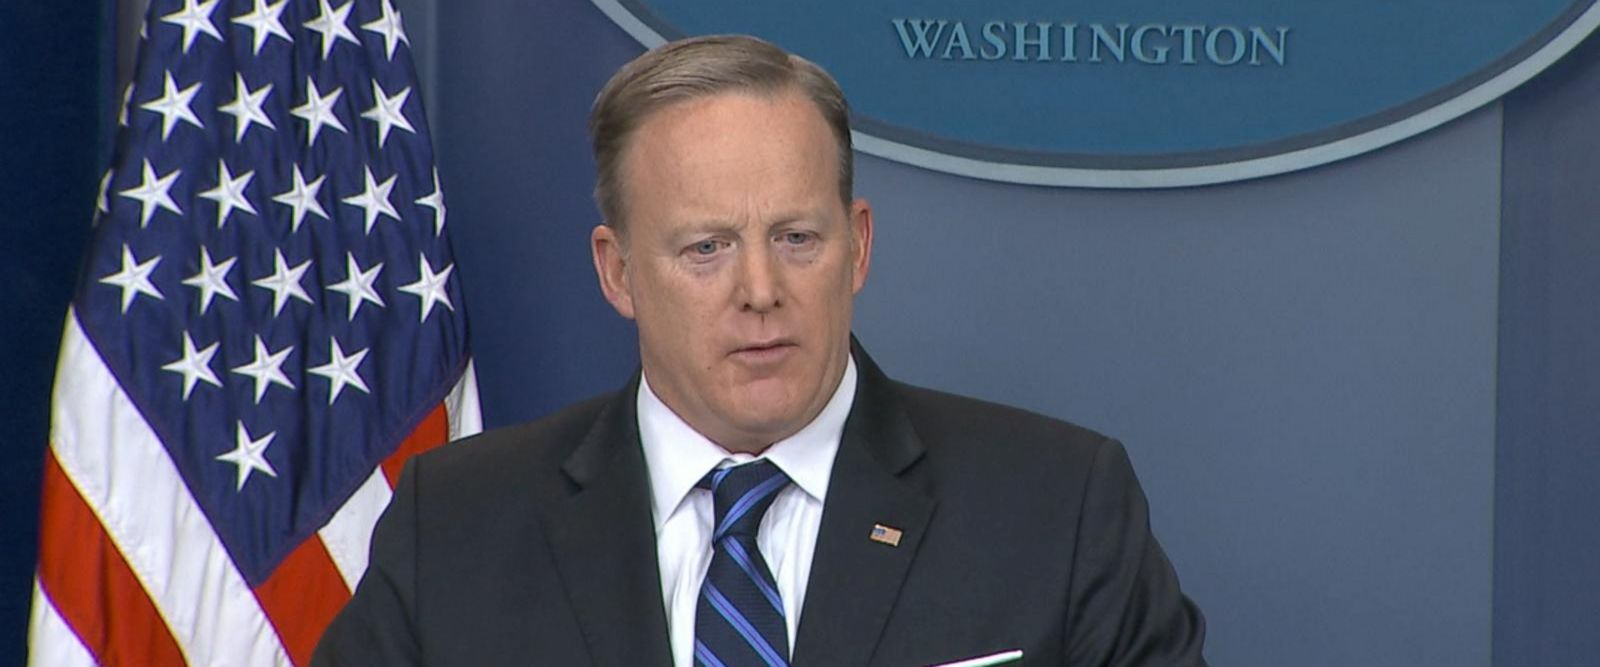 VIDEO: Spicer says angry town halls are hybrid of upset people and professional protesters